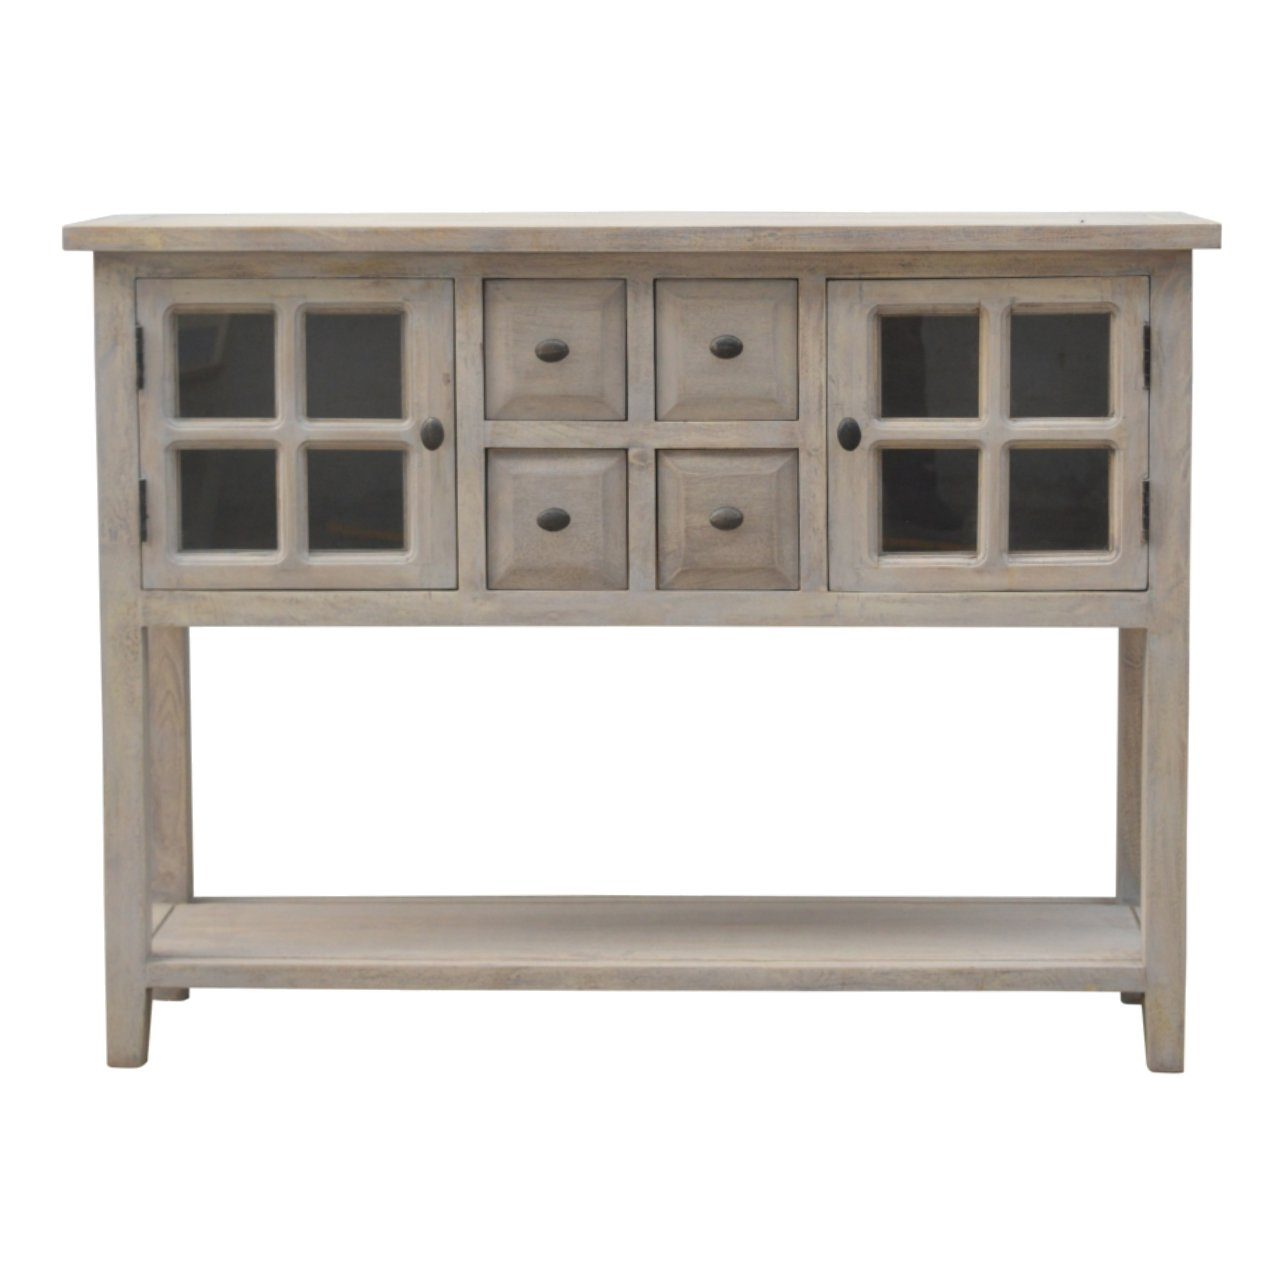 Gareth Buffet Table Regarding Wooden Buffets With Two Side Door Storage Cabinets And Stemware Rack (Gallery 17 of 20)